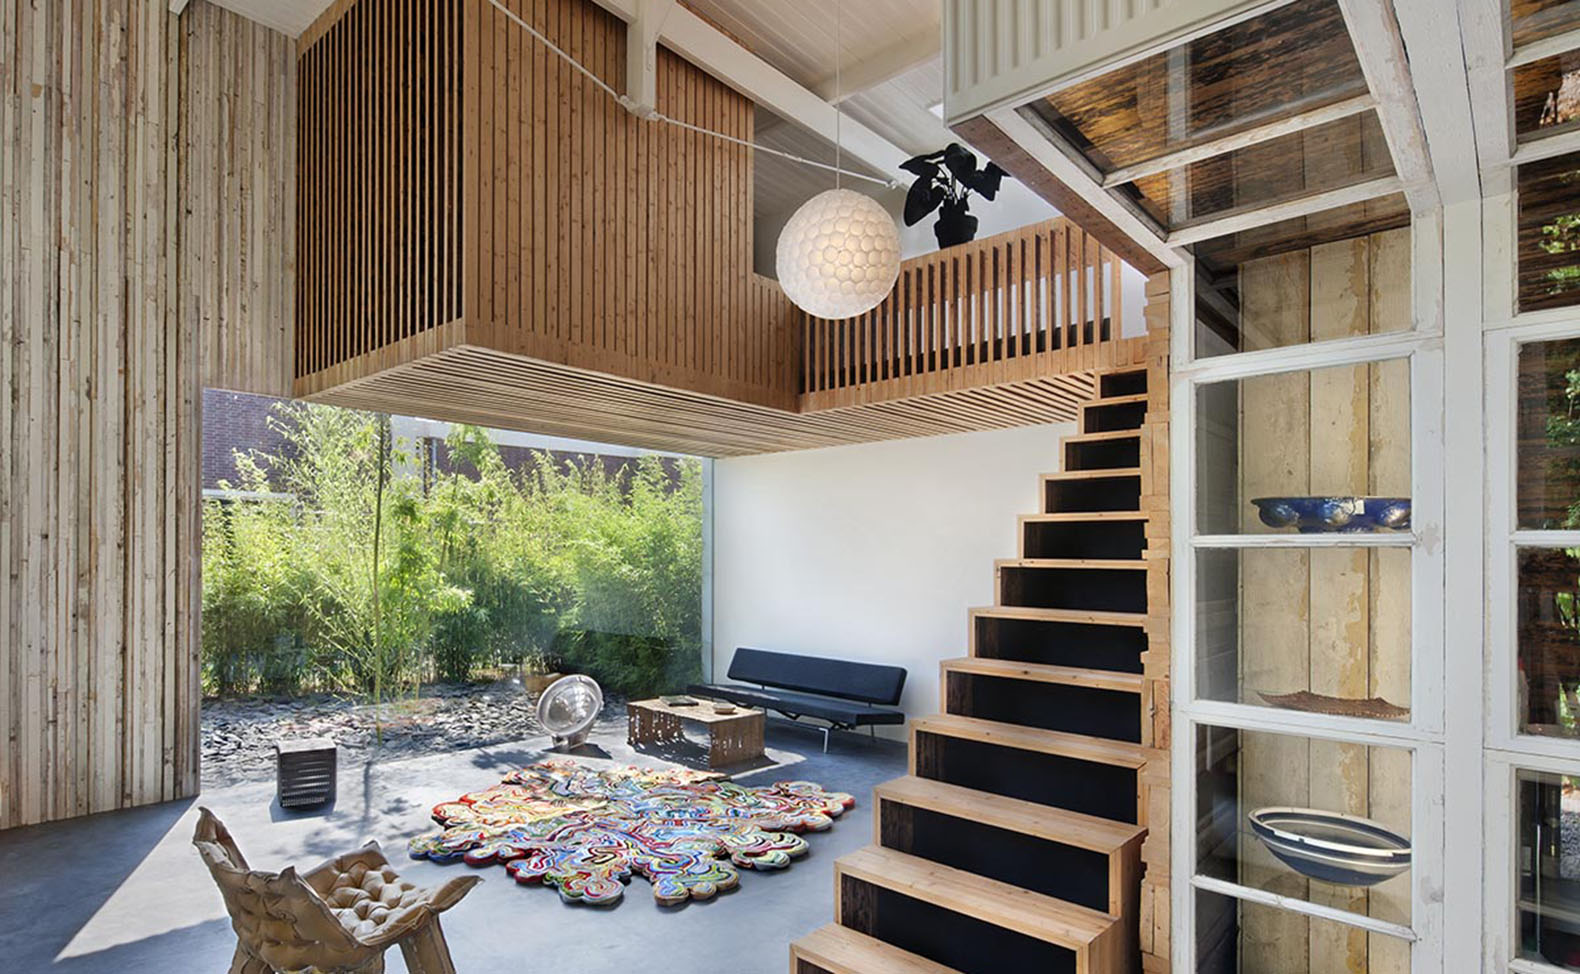 Renovated Coach House, House Of Rolf, Studio Roft, Reclaimed Materials, The  Netherlands